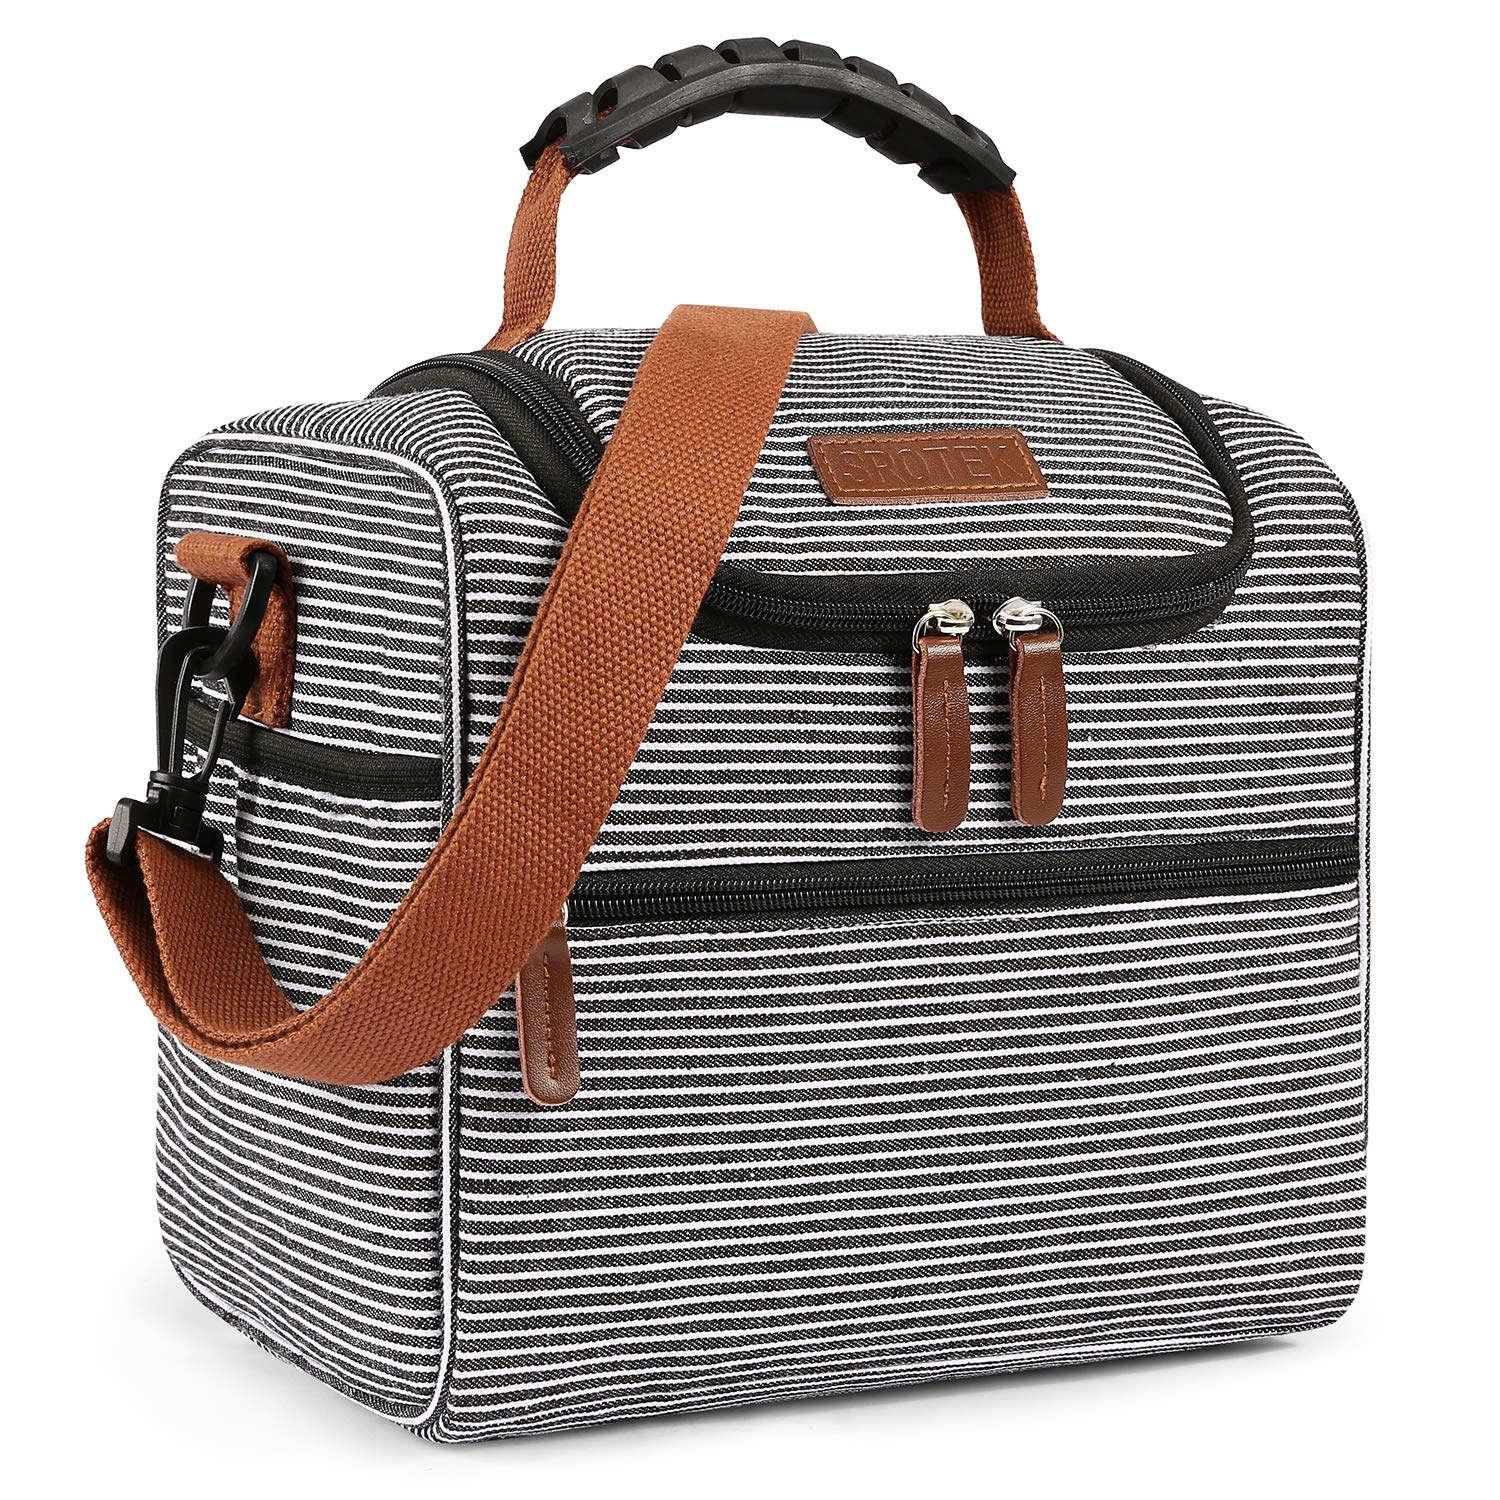 LOKASS Lunch Box Insulated Lunch Bag Large Lunch Cooler Tote Canvas Snack Bag with Detachable Shoulder Strap for Women, Men, Adults, Water-resistant & Lightweight & Multi-pocket,Stripes